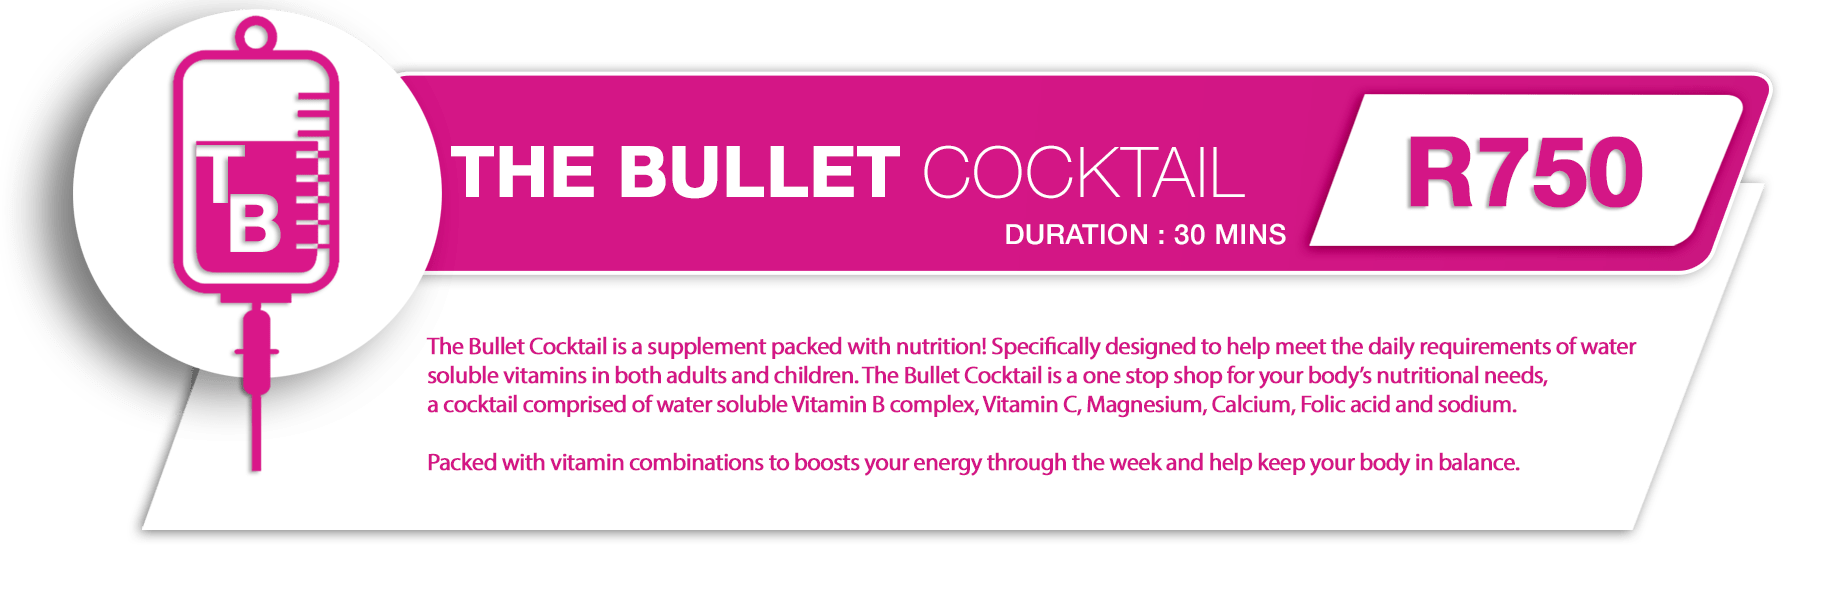 "Our ""Rolls Royce"" of IV Drips – The Bullet Cocktail is a supplement in IV nutrition. A one stop shop your body's nutritional needs, a cocktail comprised of water soluble Vitamin B complex, Vitamin C, Magnesium, Calcium, Folic acid and sodium. Boosts your energy through the week and helps keep your body in balance."